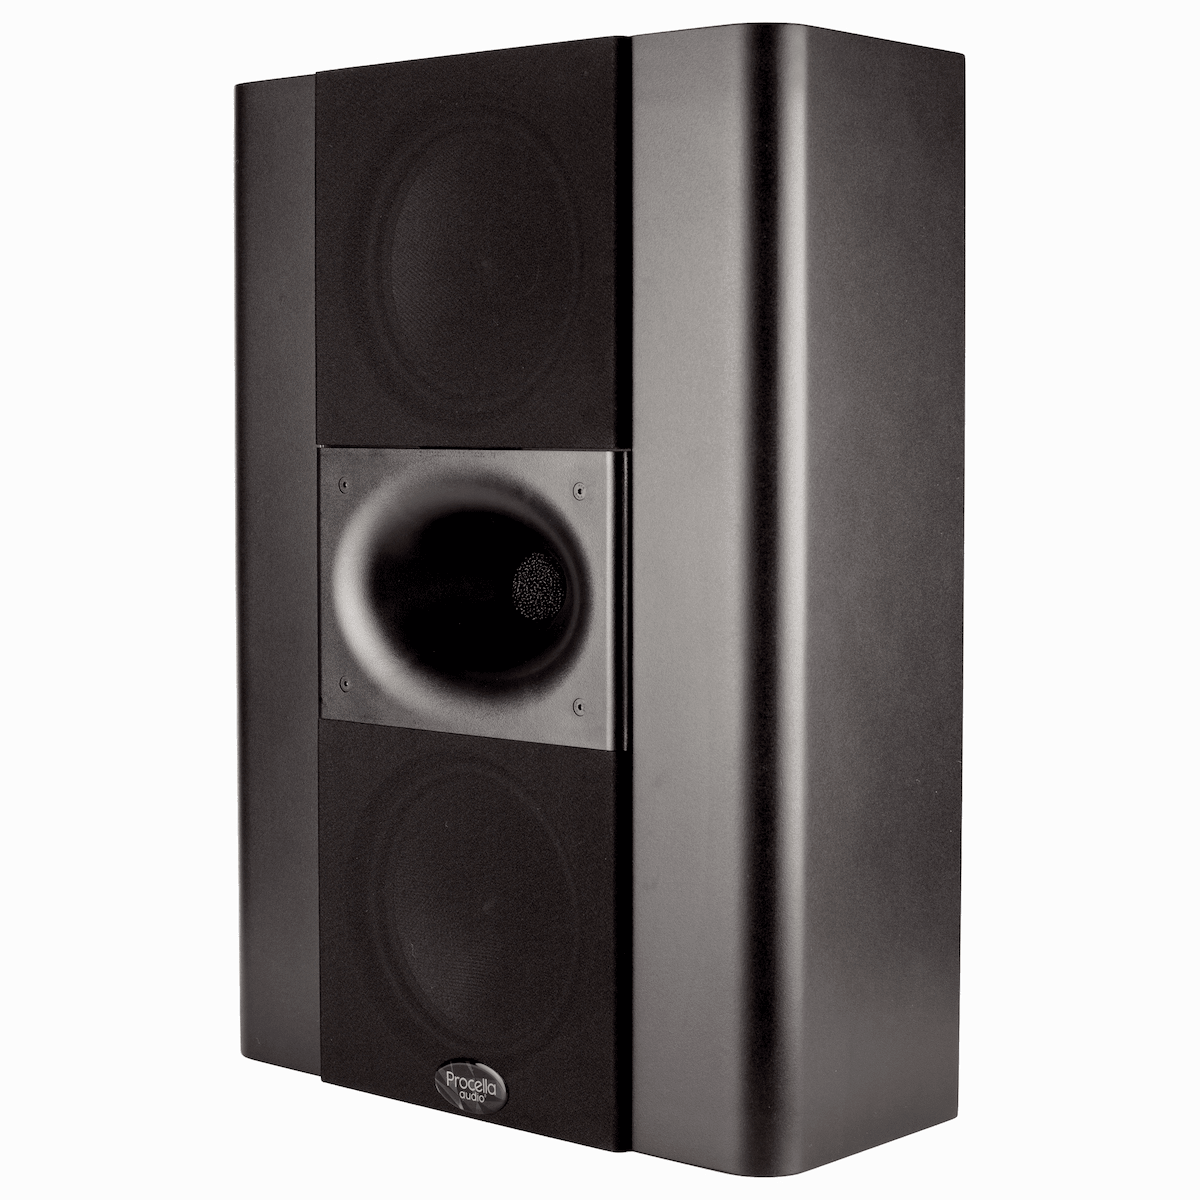 Procella P28 side with cover 1200×1200